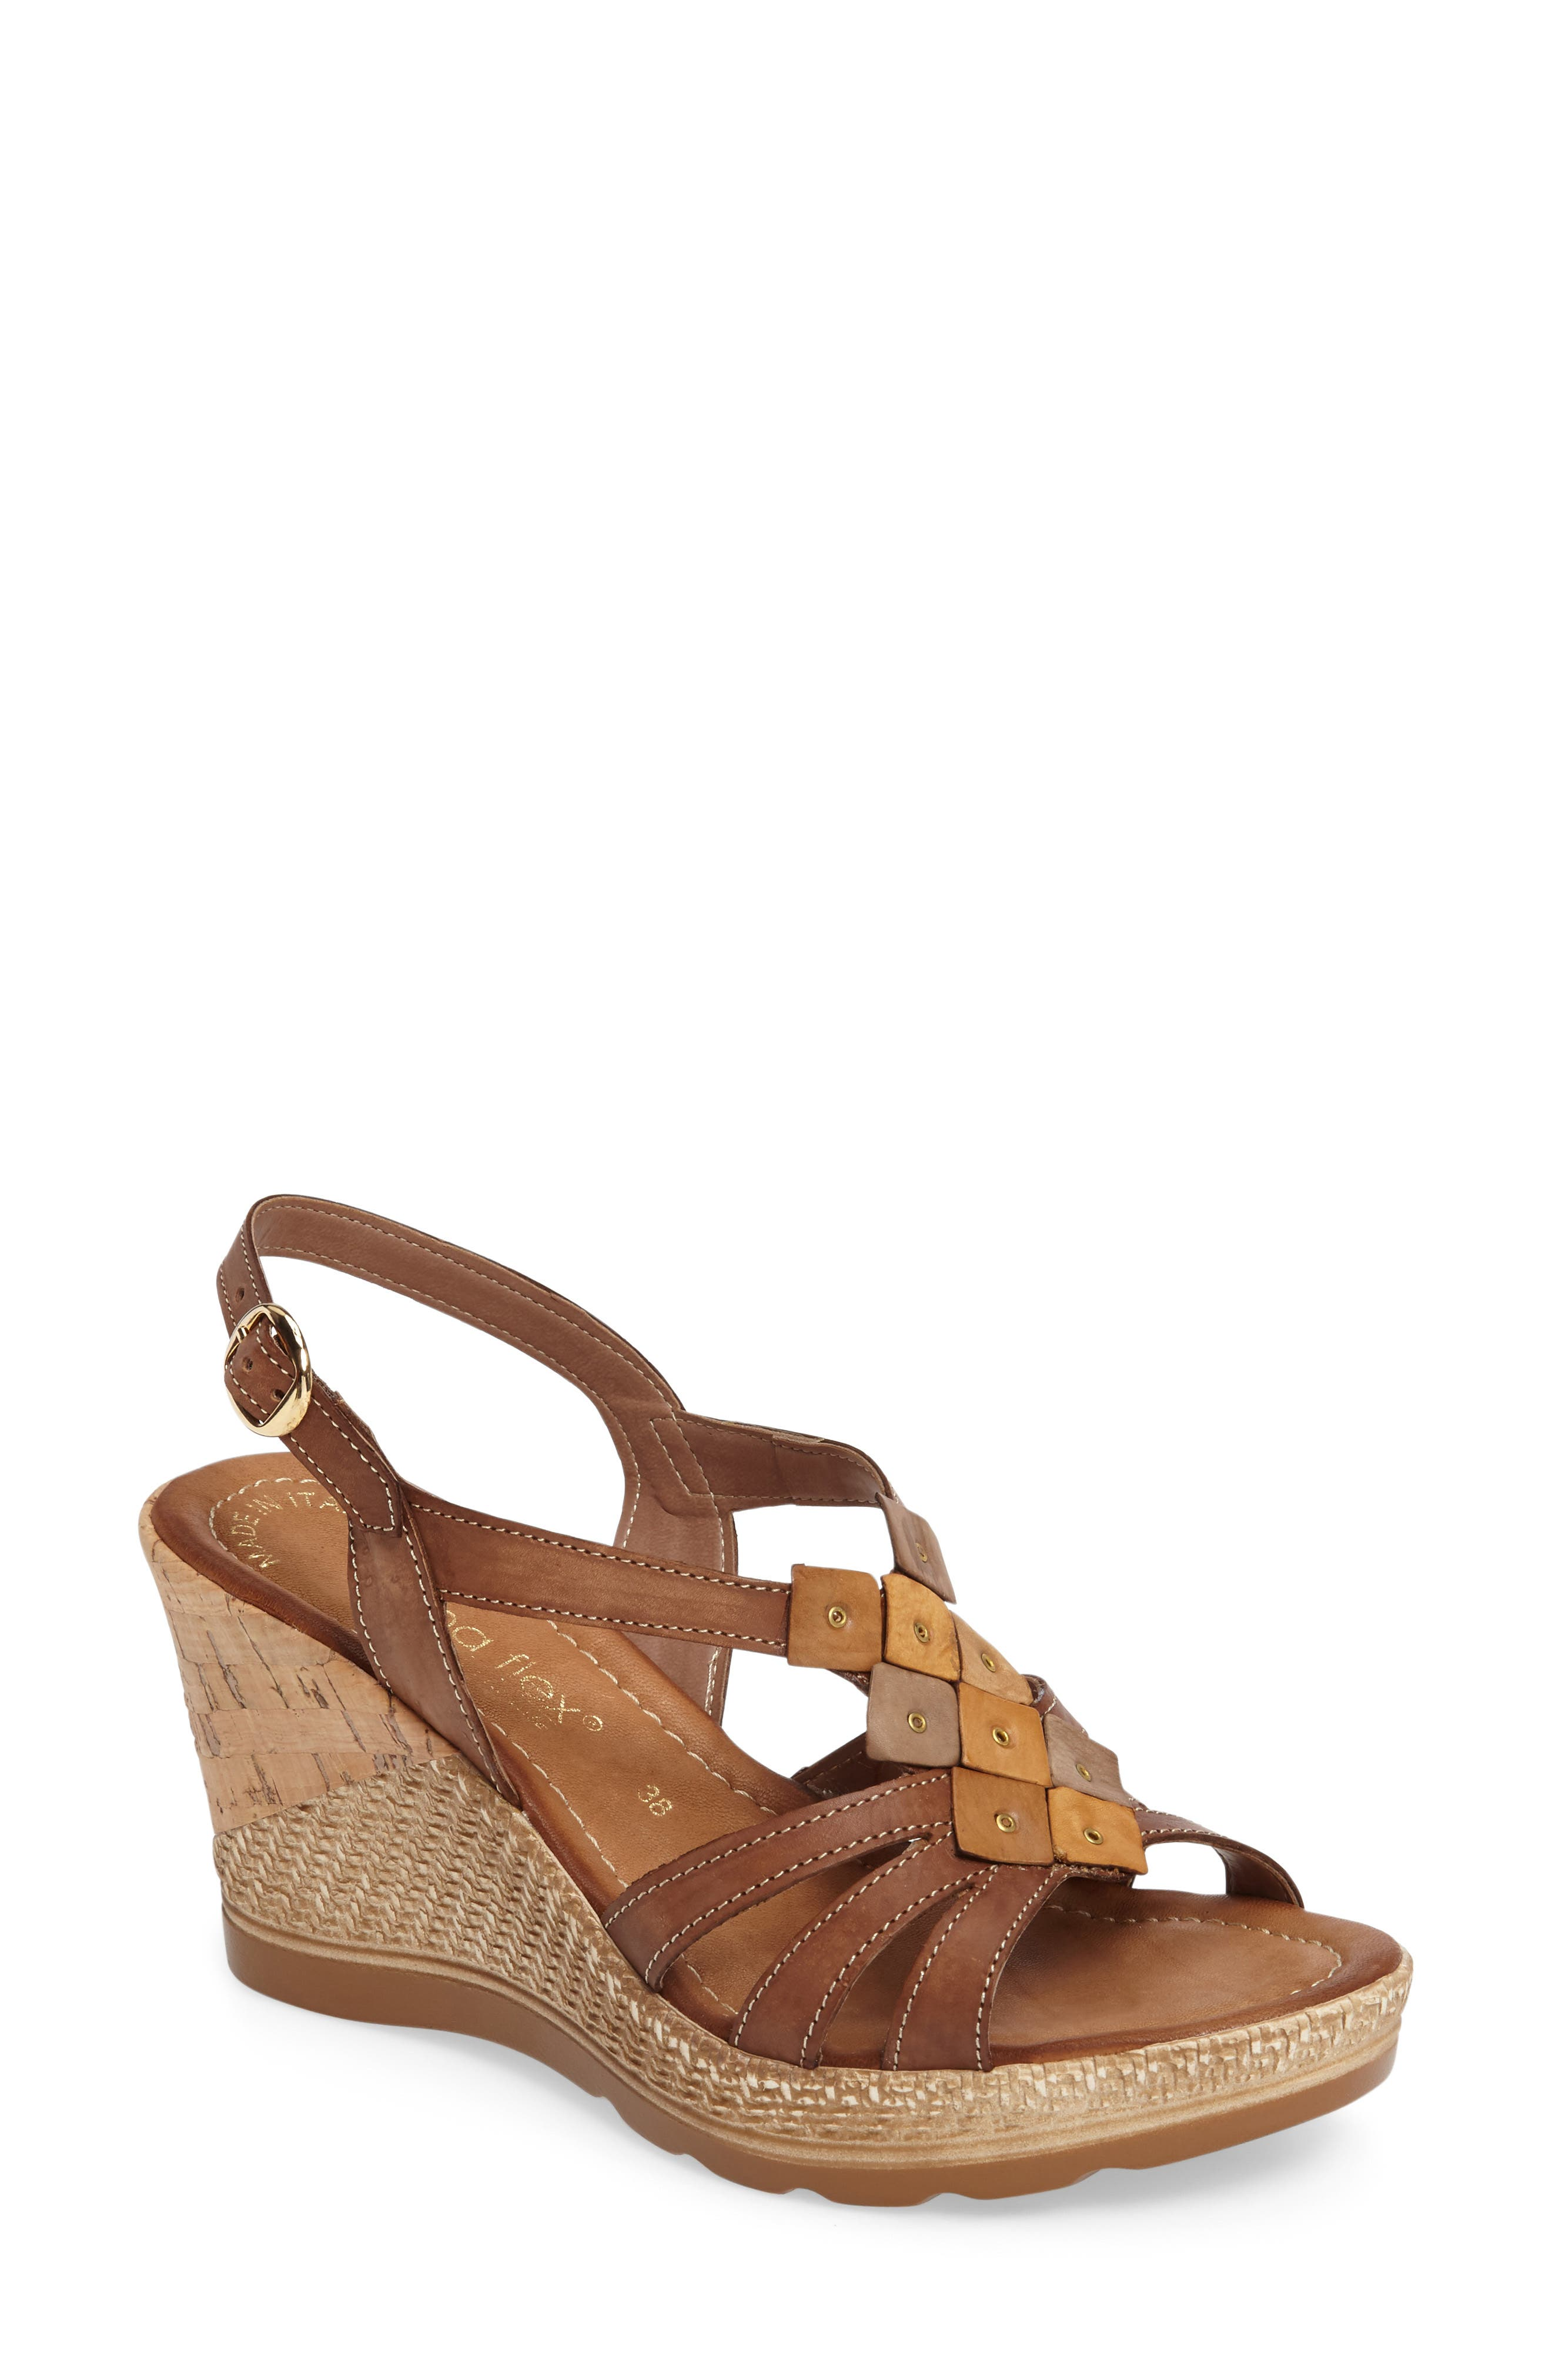 NAPA FLEX Bari Wedge Sandal